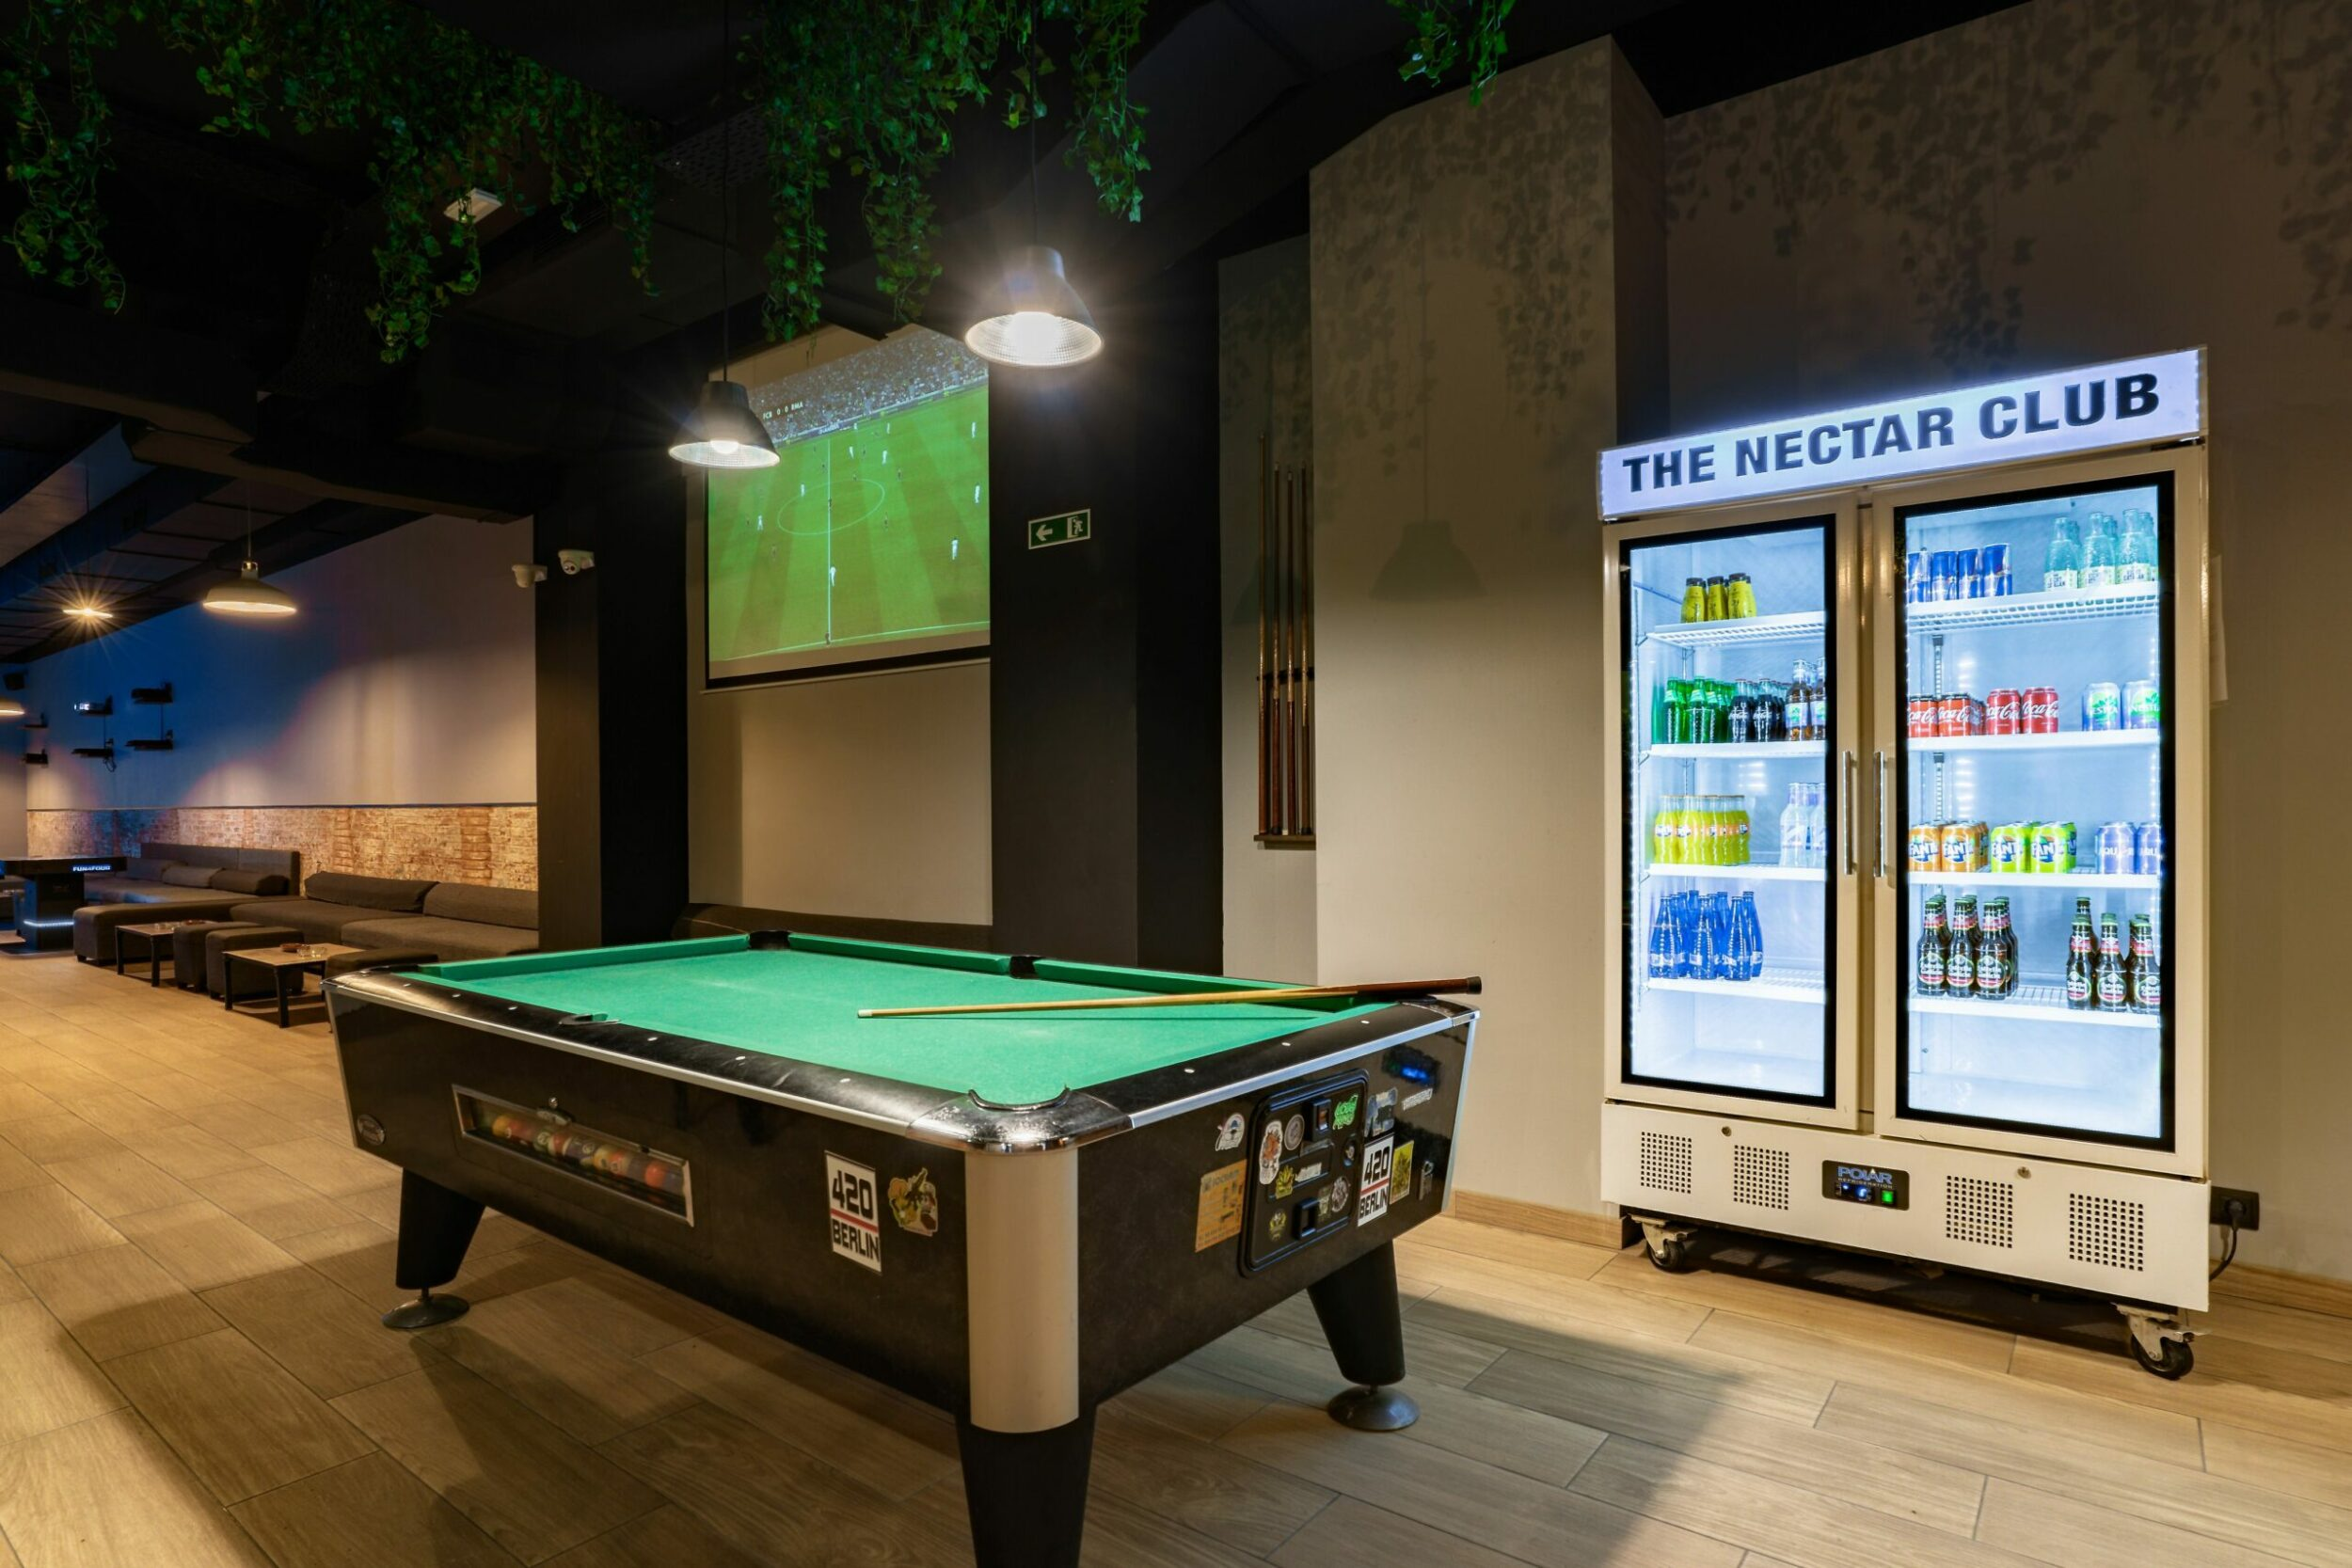 billiard table and refrigerator with drinks in the Sant Antoni Weed Club